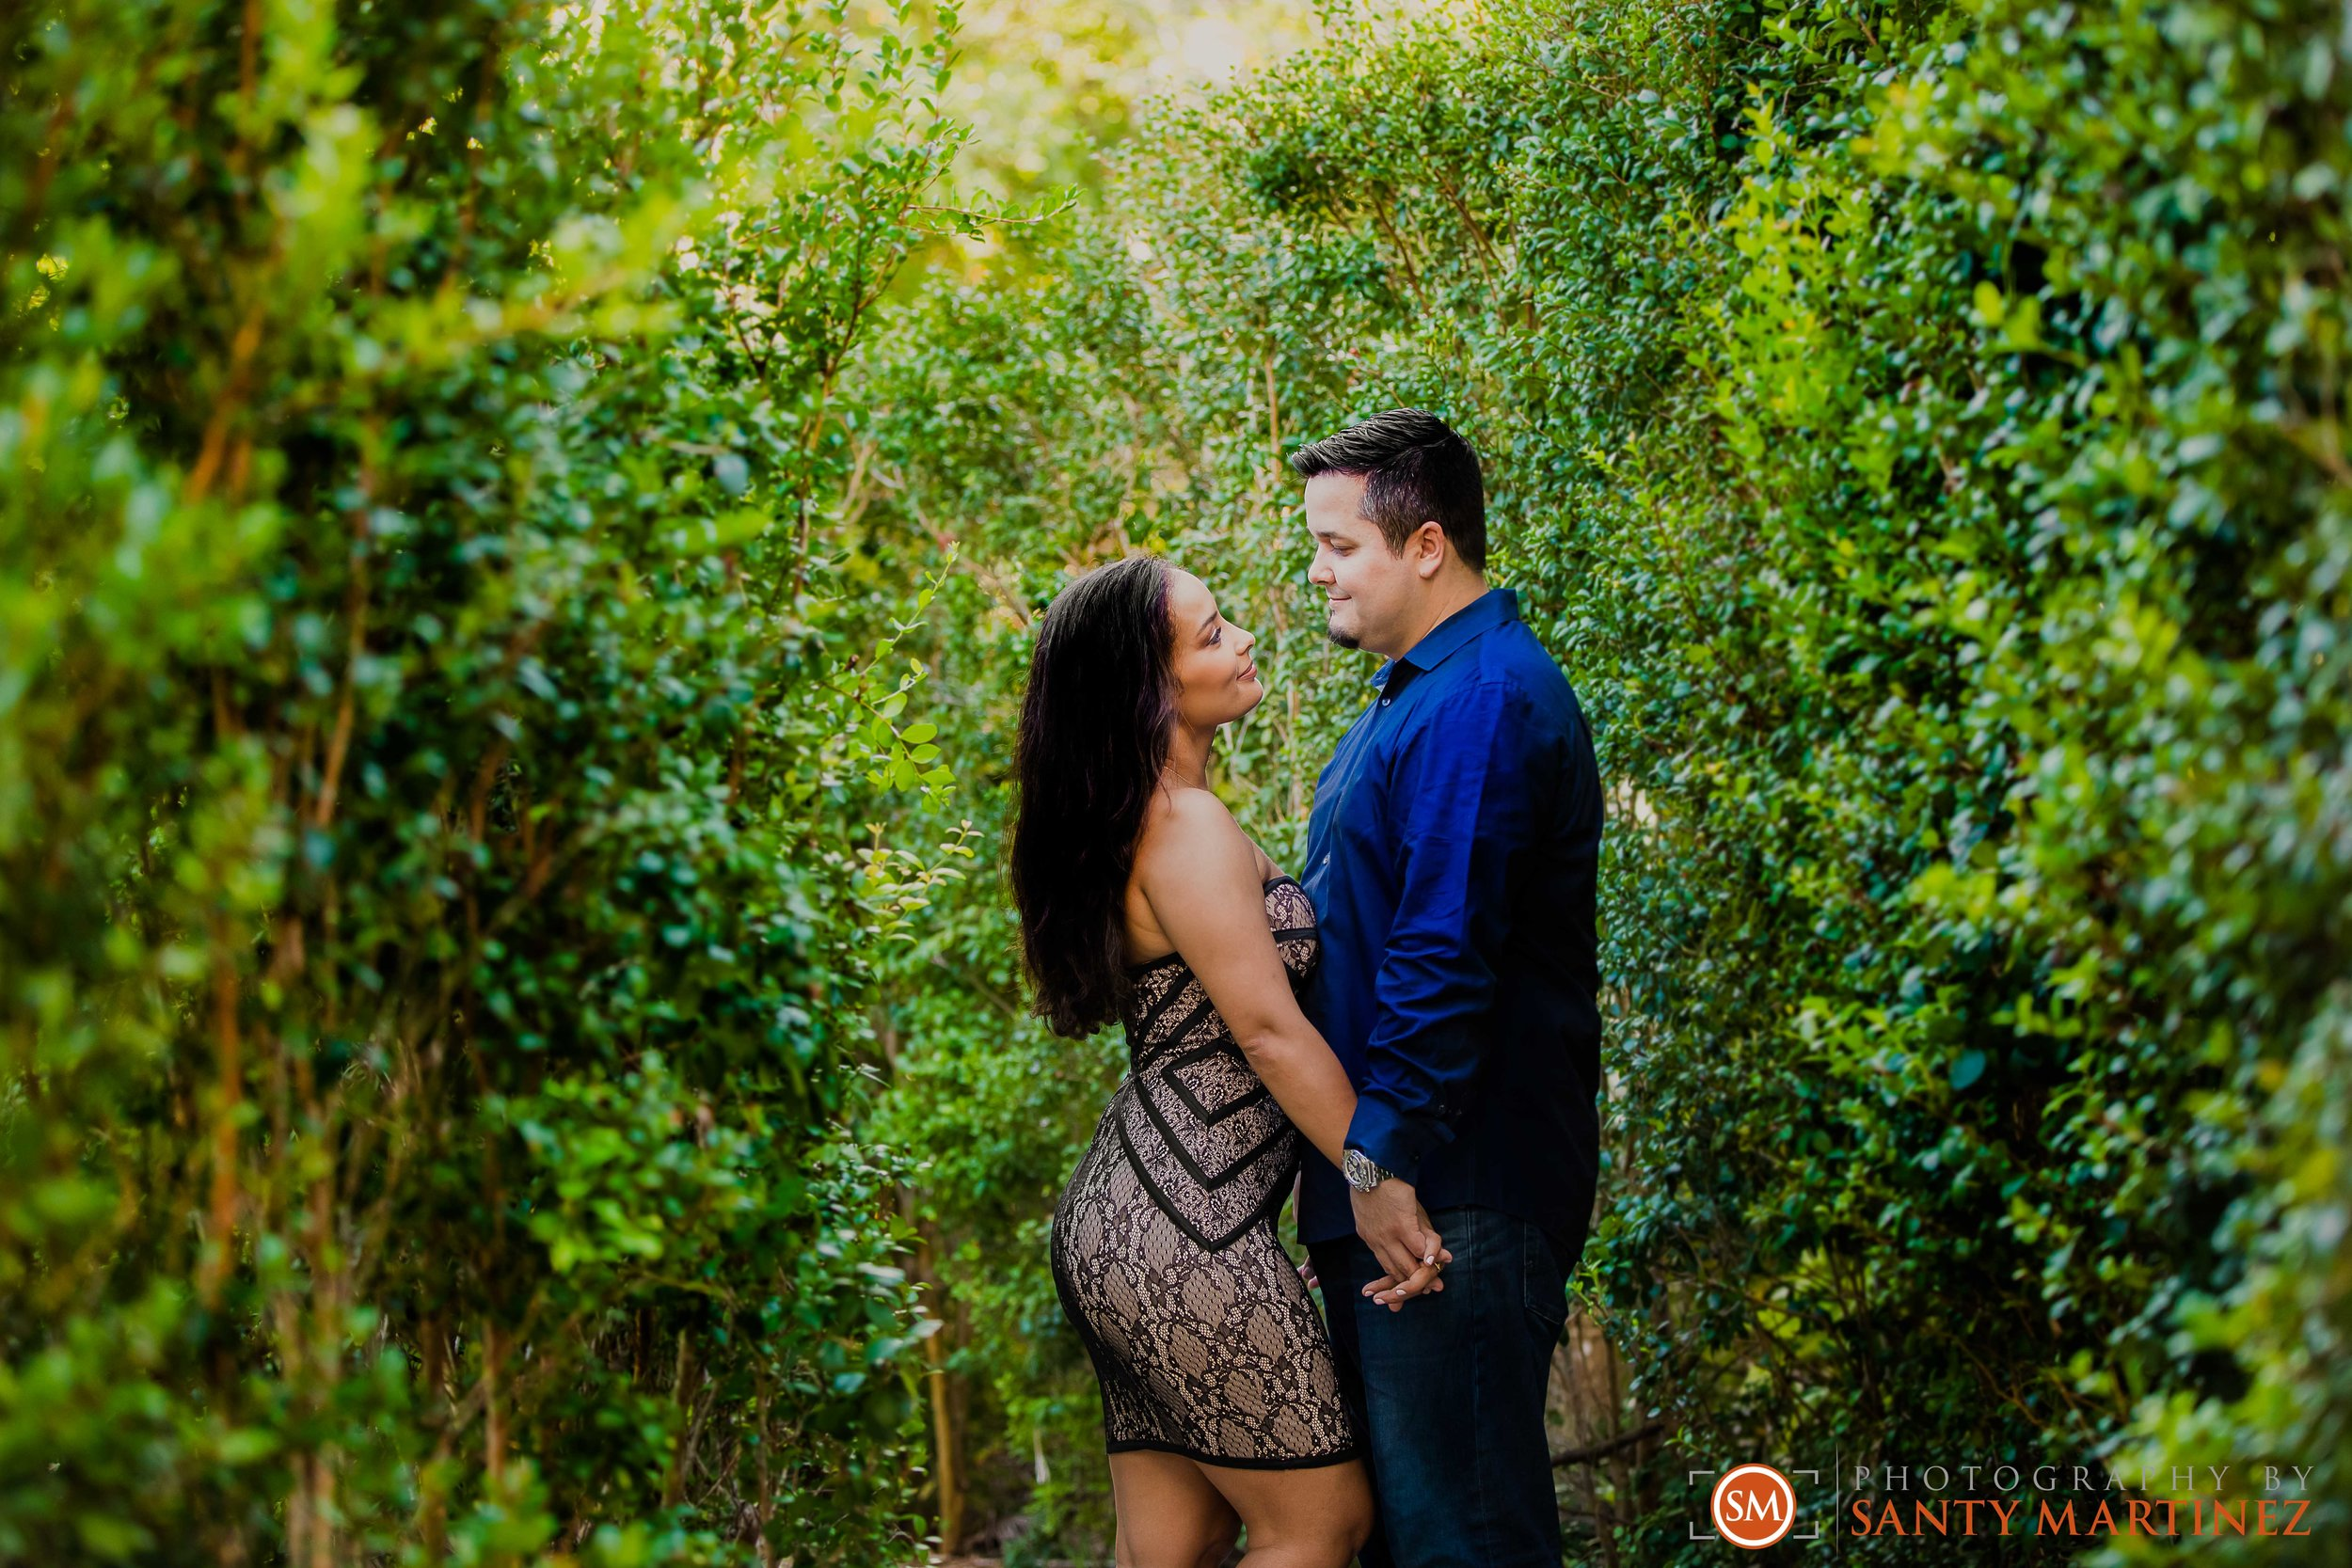 Vizcaya Engagement Session - Photography by Santy Martinez-14.jpg